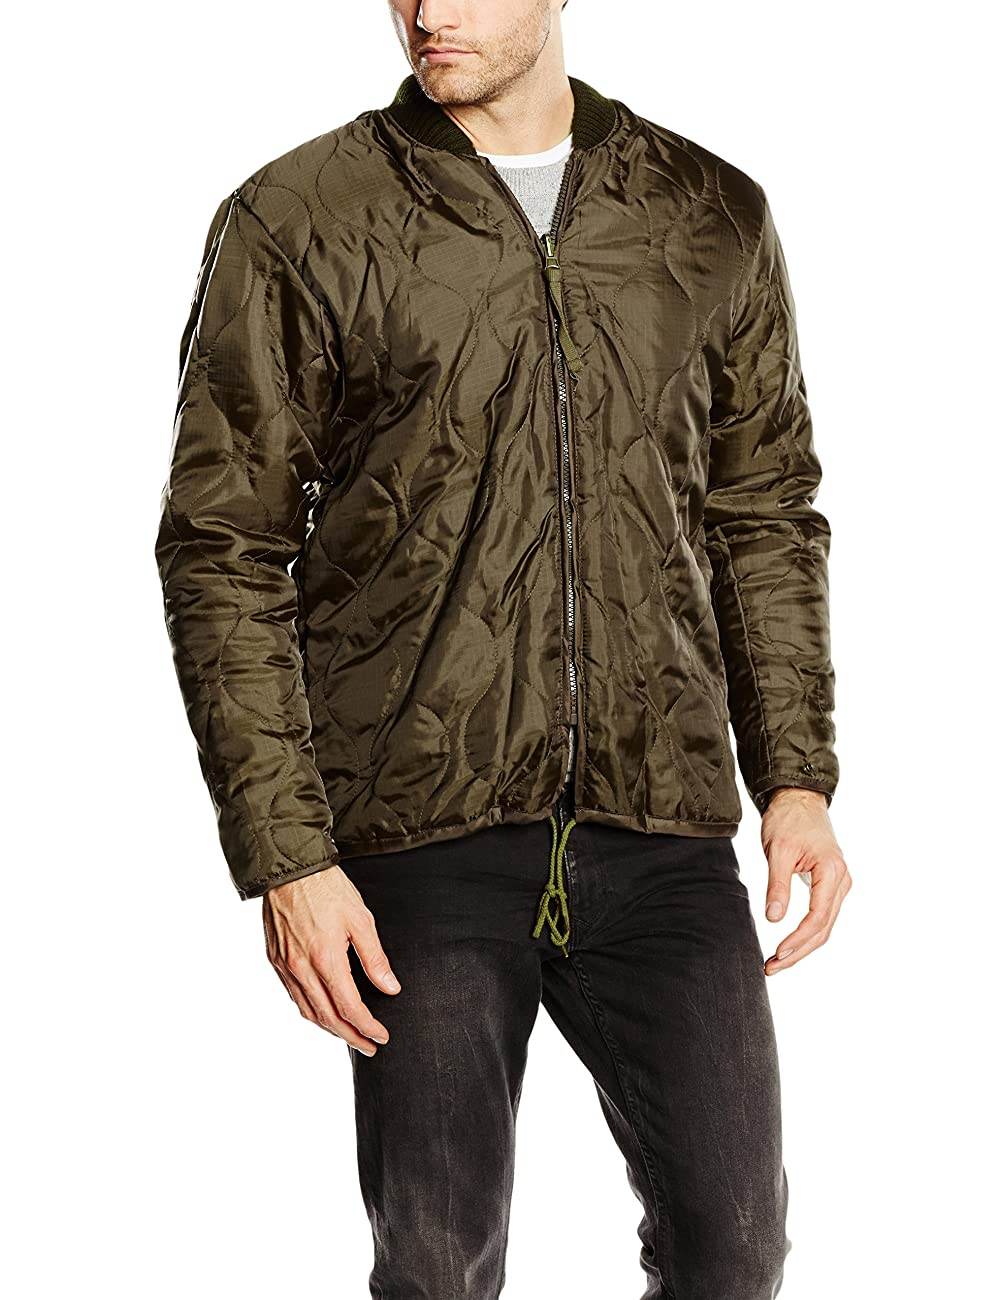 Brandit Men's M-65 Giant Jacket Olive 3